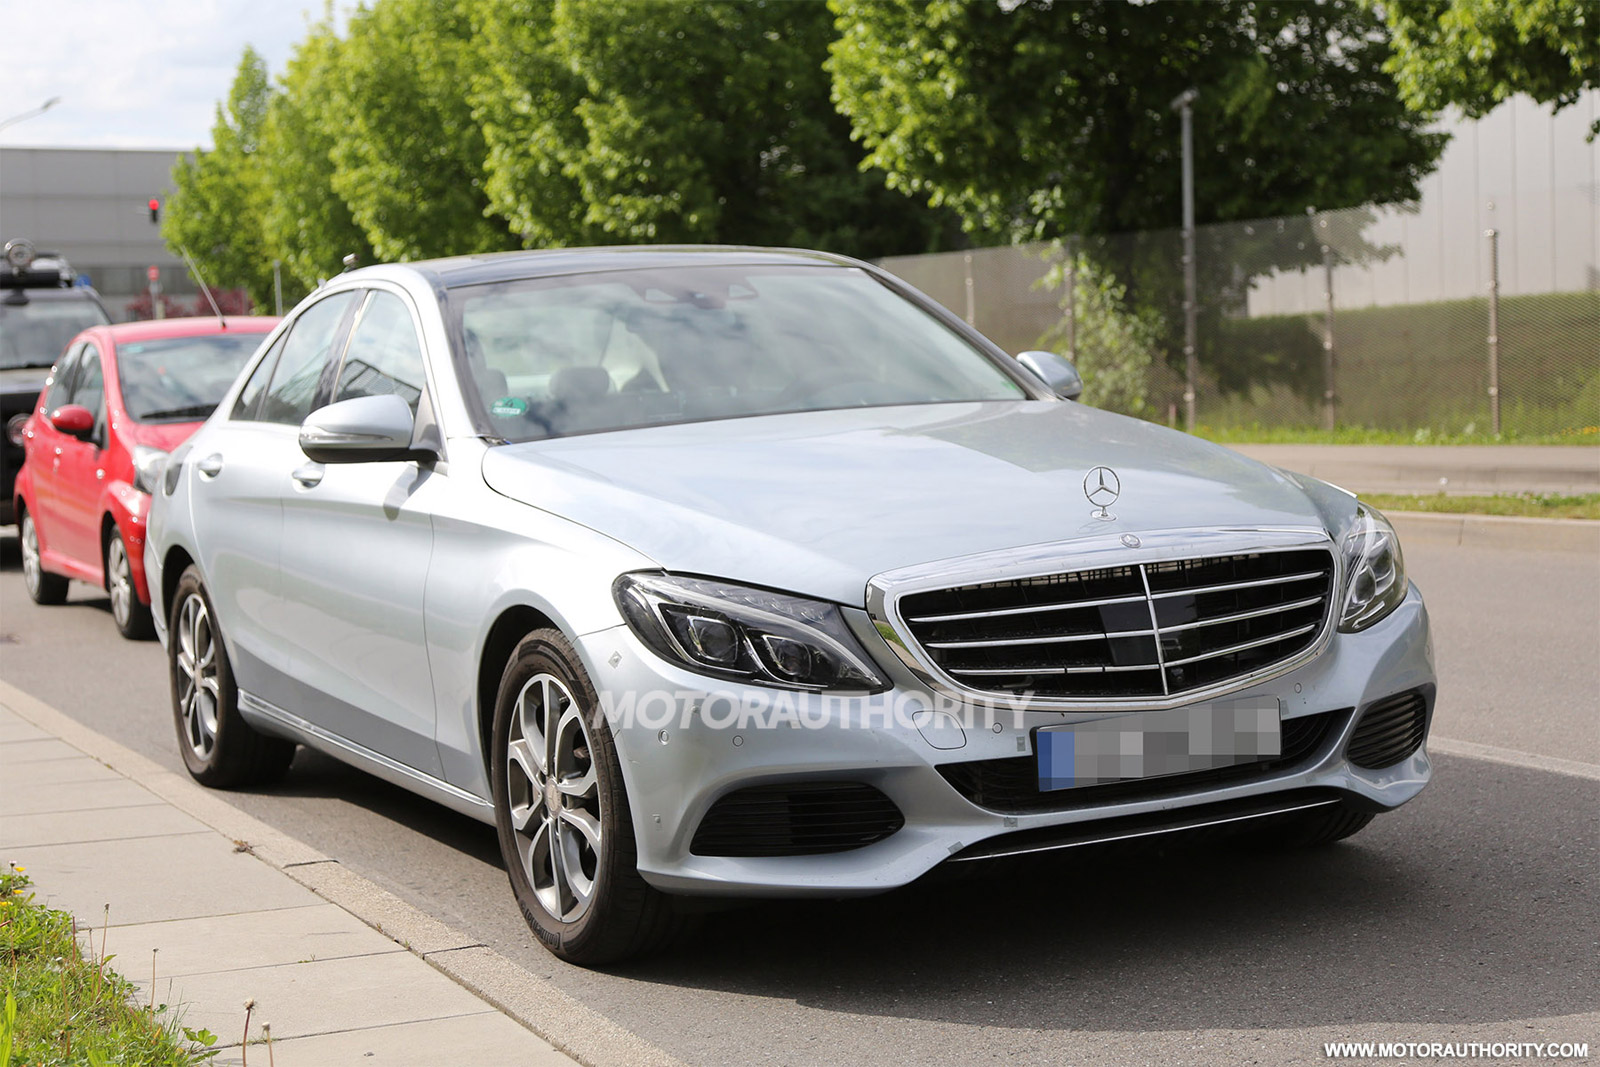 Class Of 2016 Quotes 2016-mercedes-benz-c-class- ...